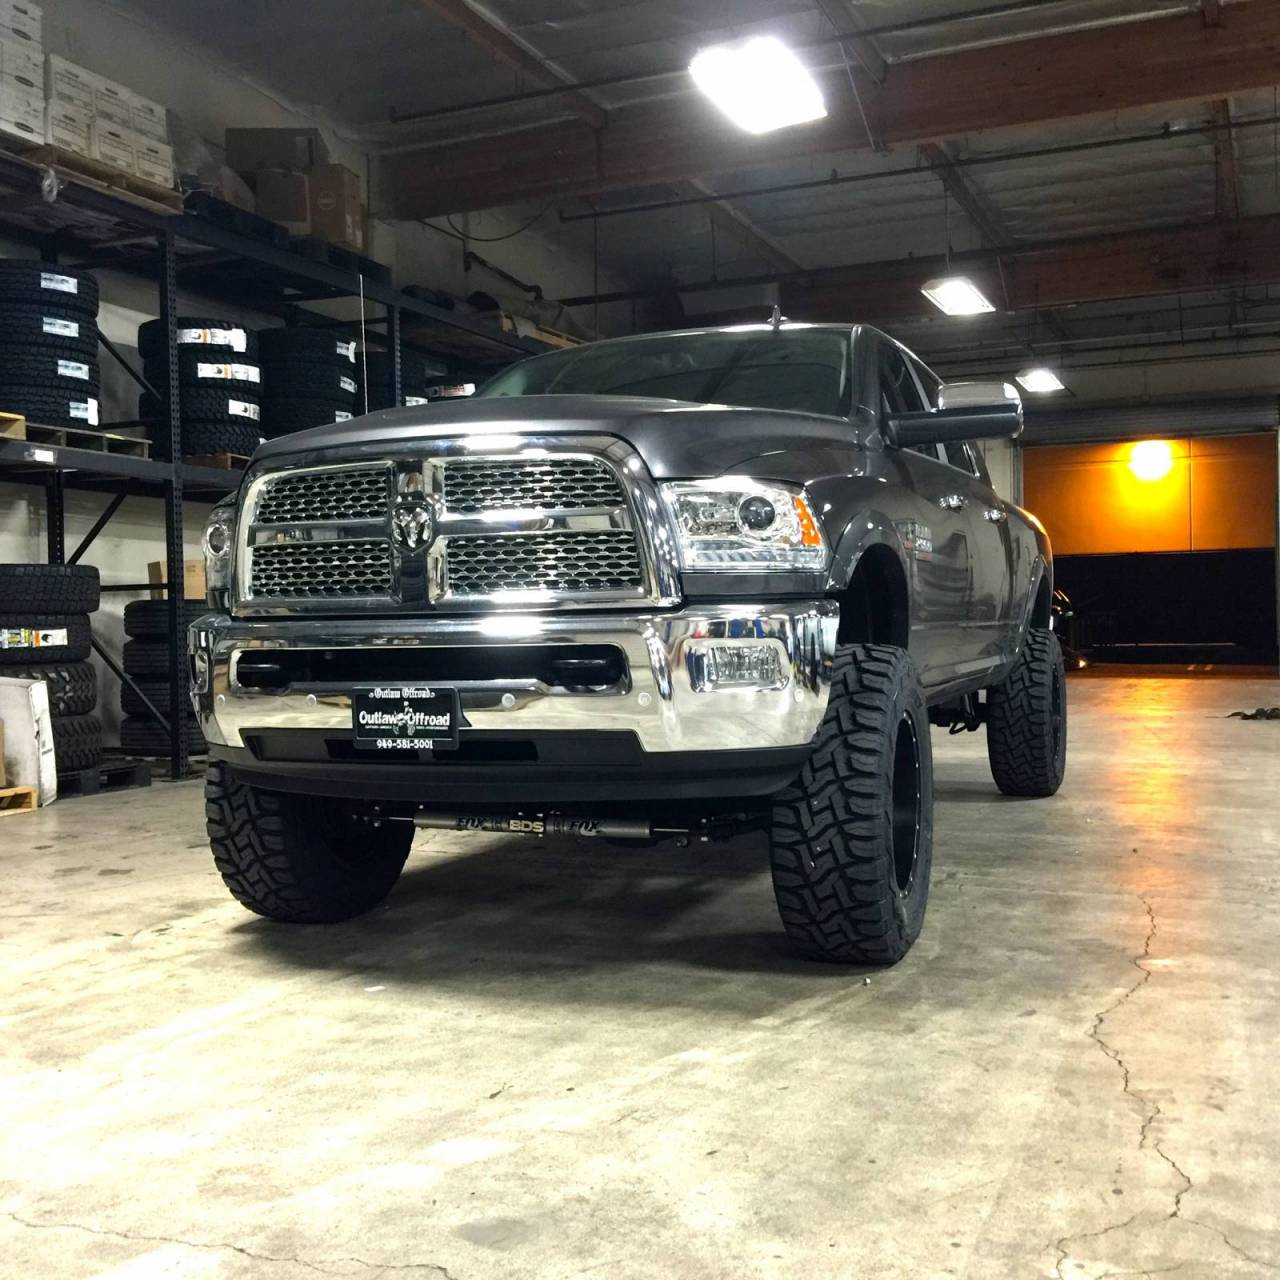 Fabtech Fts additionally A Es Front Pro Grande further D Rd Gen Pics Dodge together with S L further Maxresdefault. on dodge ram 1500 4x2 lift kit